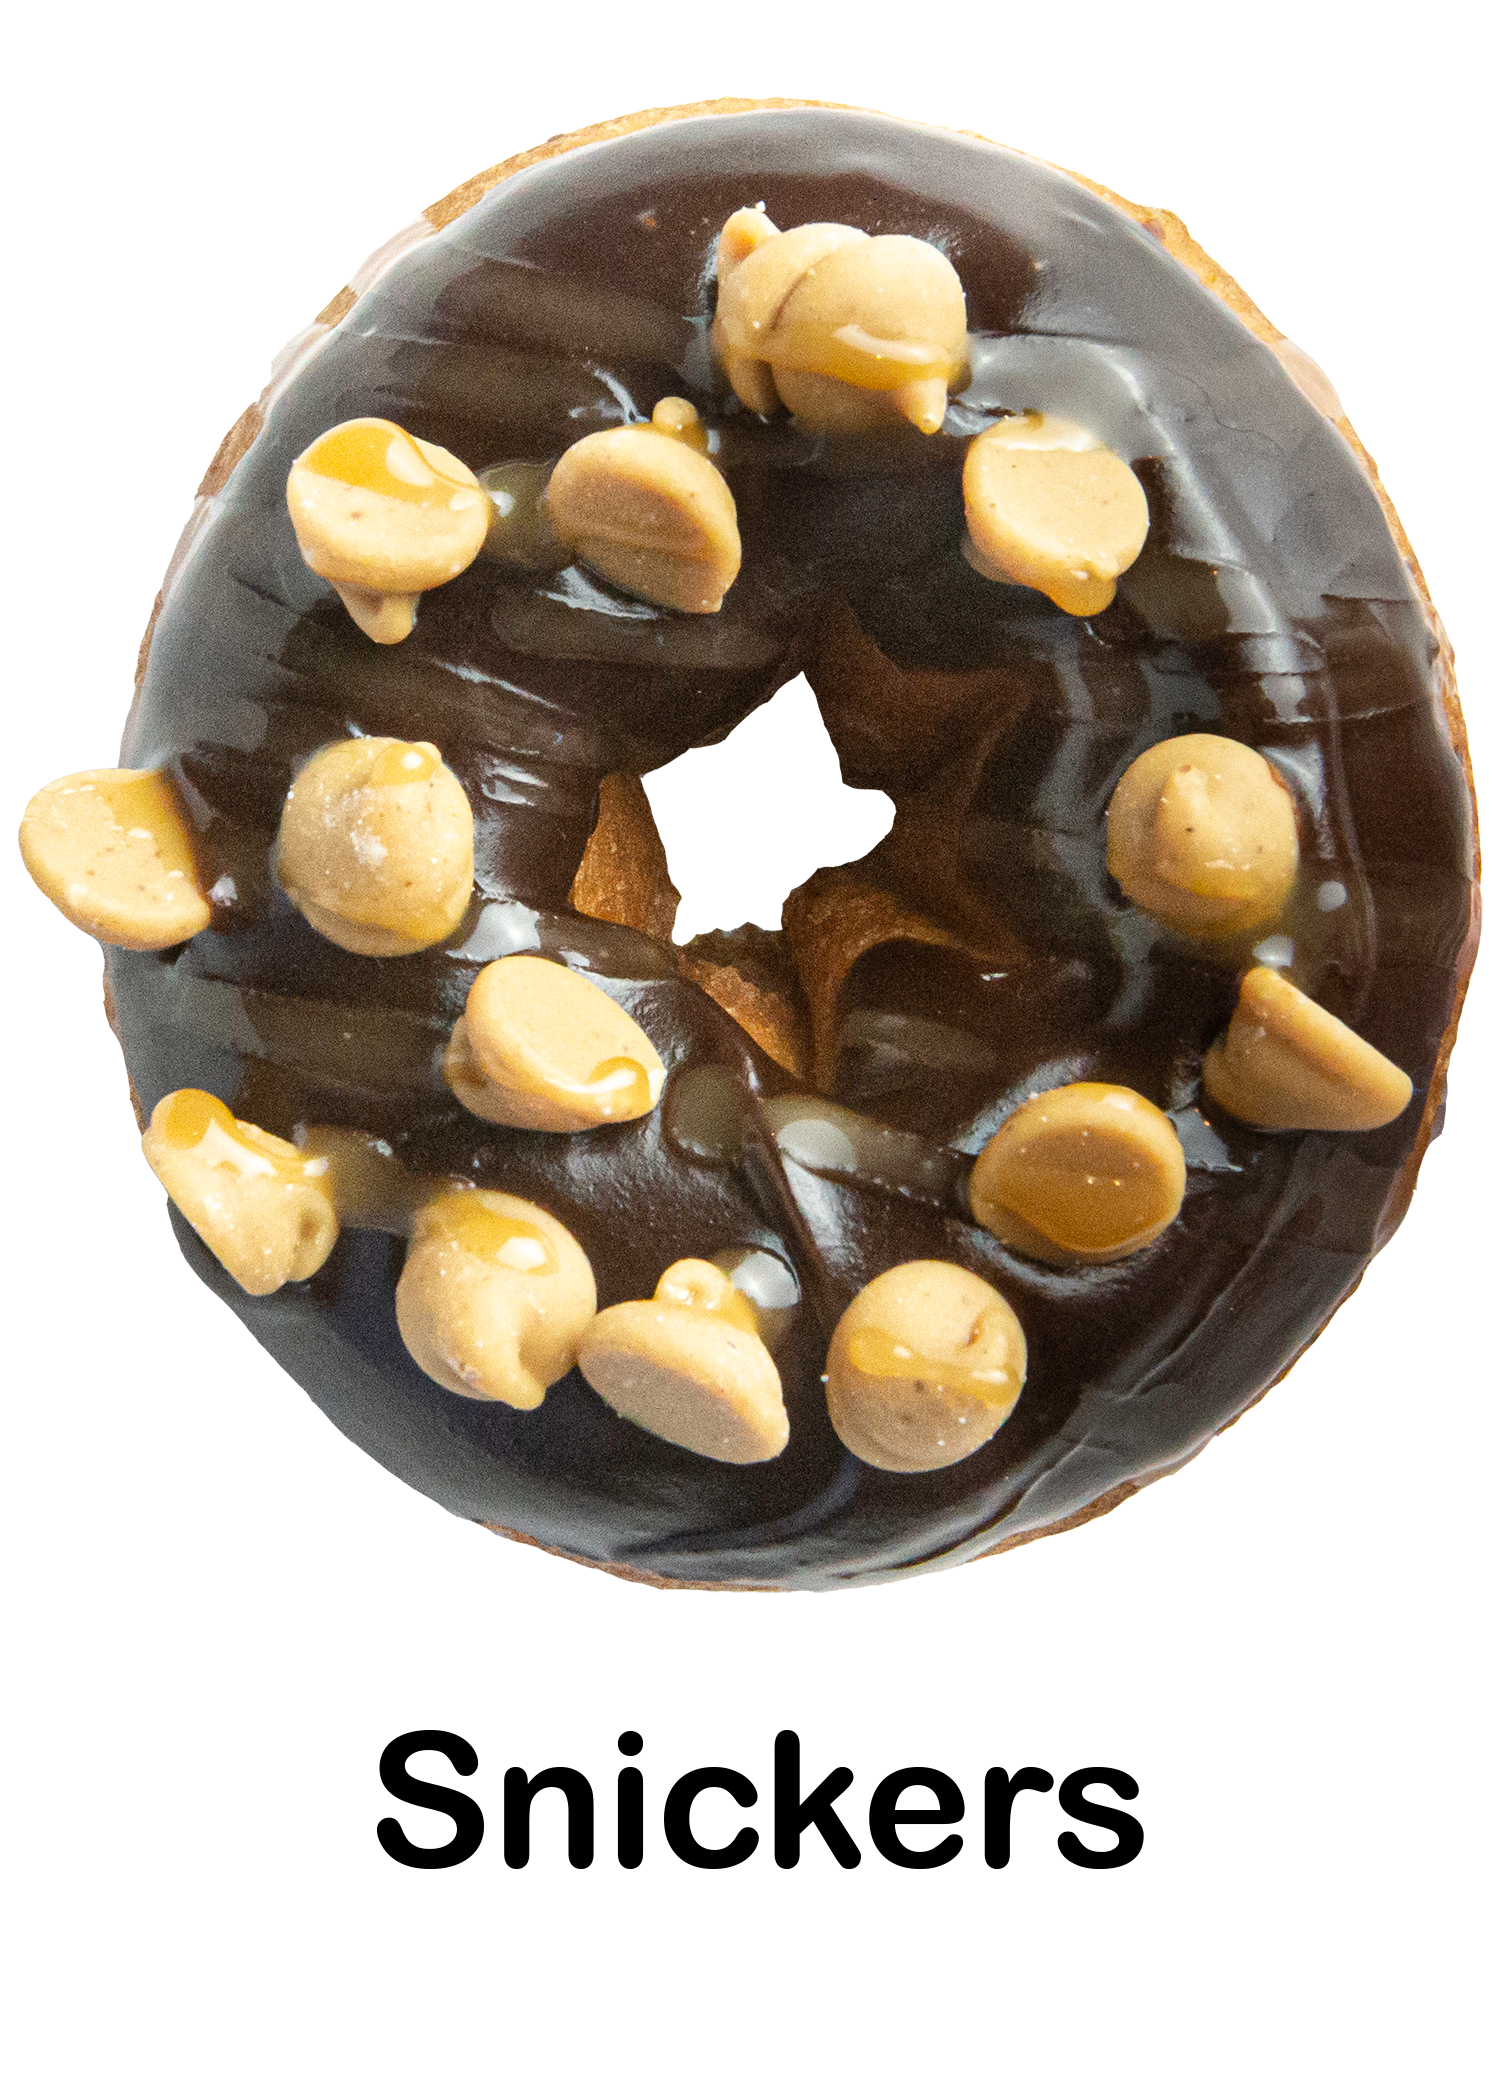 Chocolate Frosting, Peanut Butter Chips, Salted Caramel Drizzle